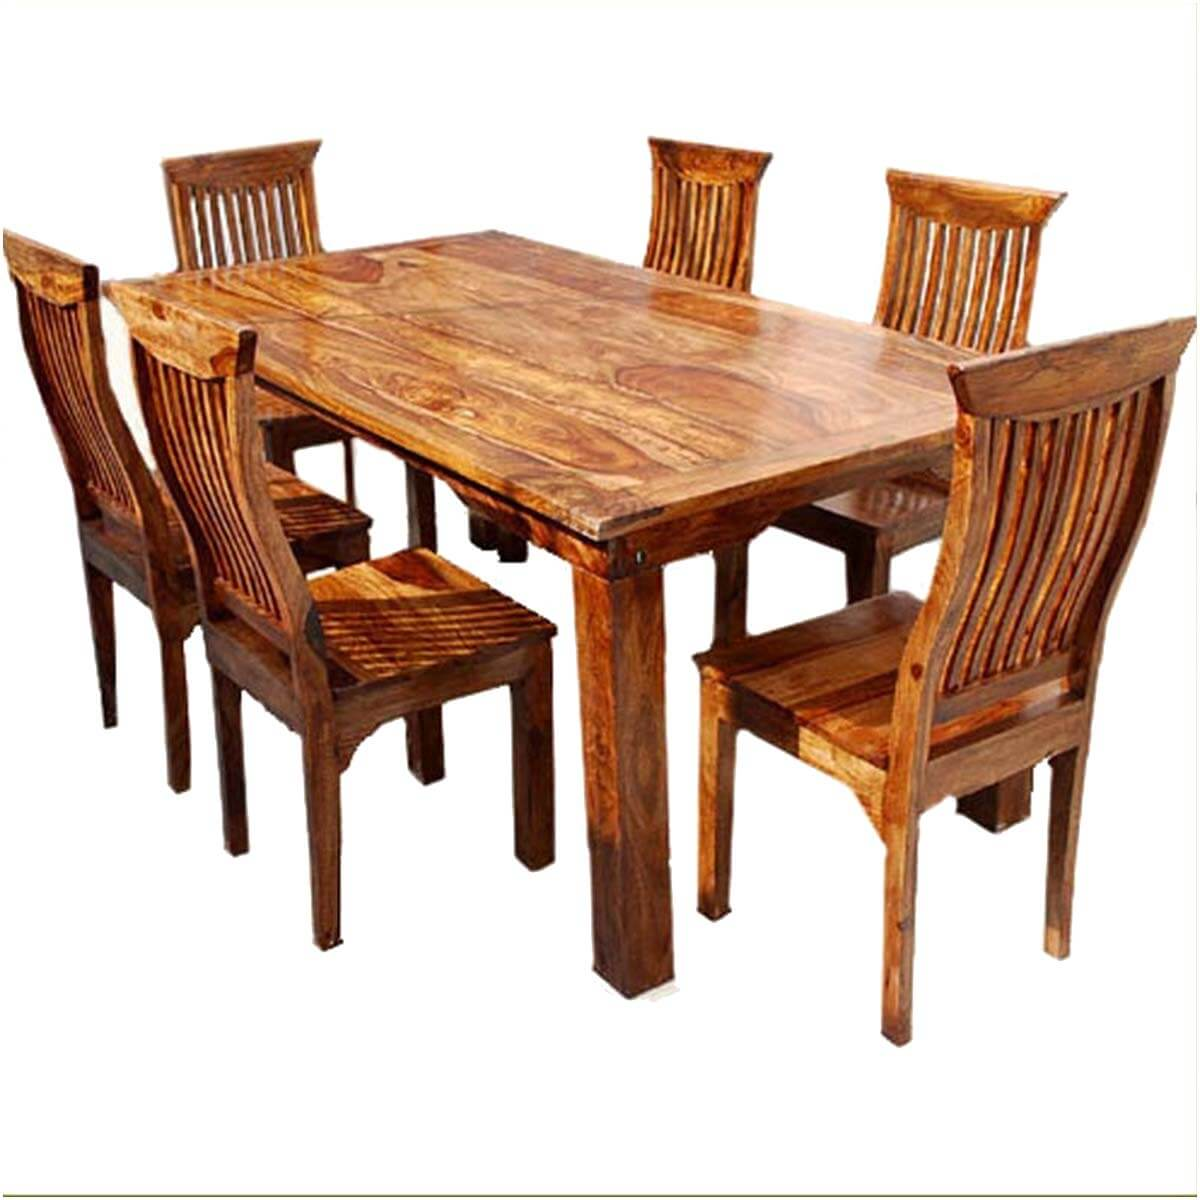 Rustic Wood Chairs Dallas Ranch Solid Wood Rustic Dining Table Chairs And Hutch Set